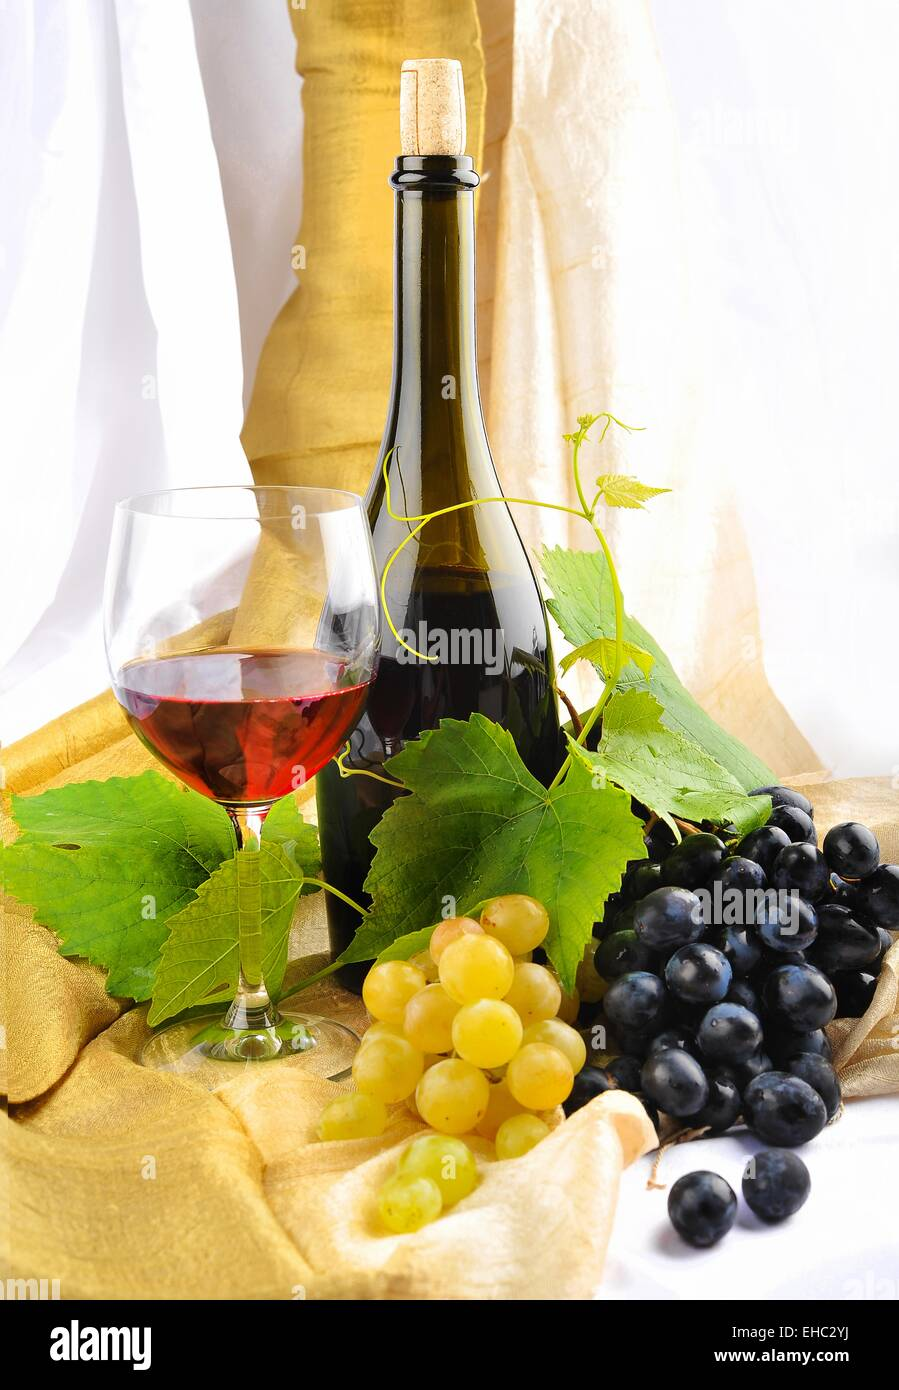 Wine and Grapes Setup with wine bottles and grapes - Stock Image